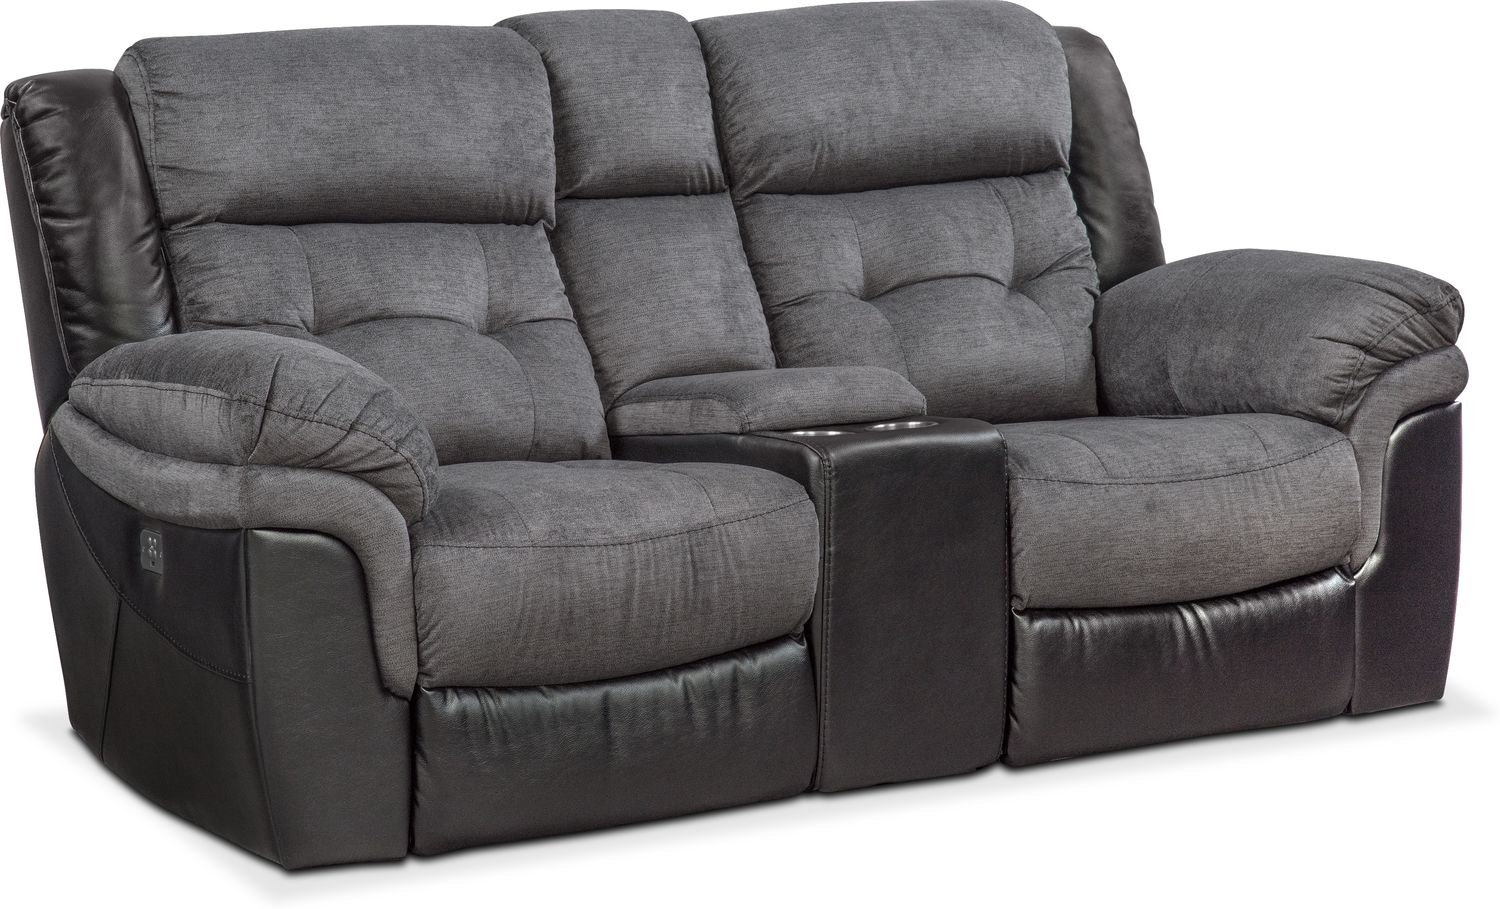 Tacoma Dual Power Reclining Loveseat with Console